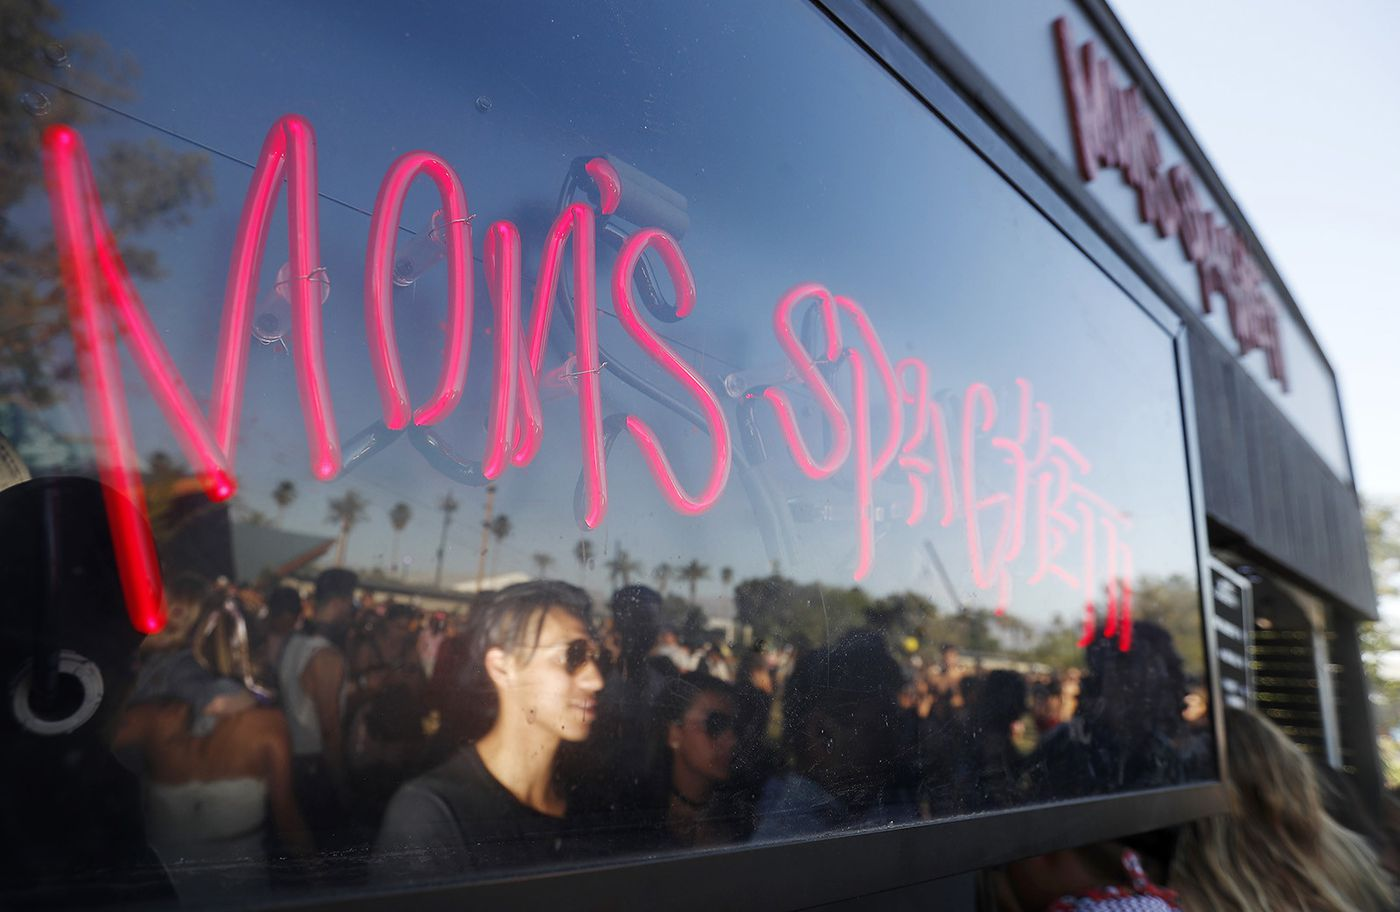 Eminem has a Mom's Spaghetti pop-up restaurant at Coachella